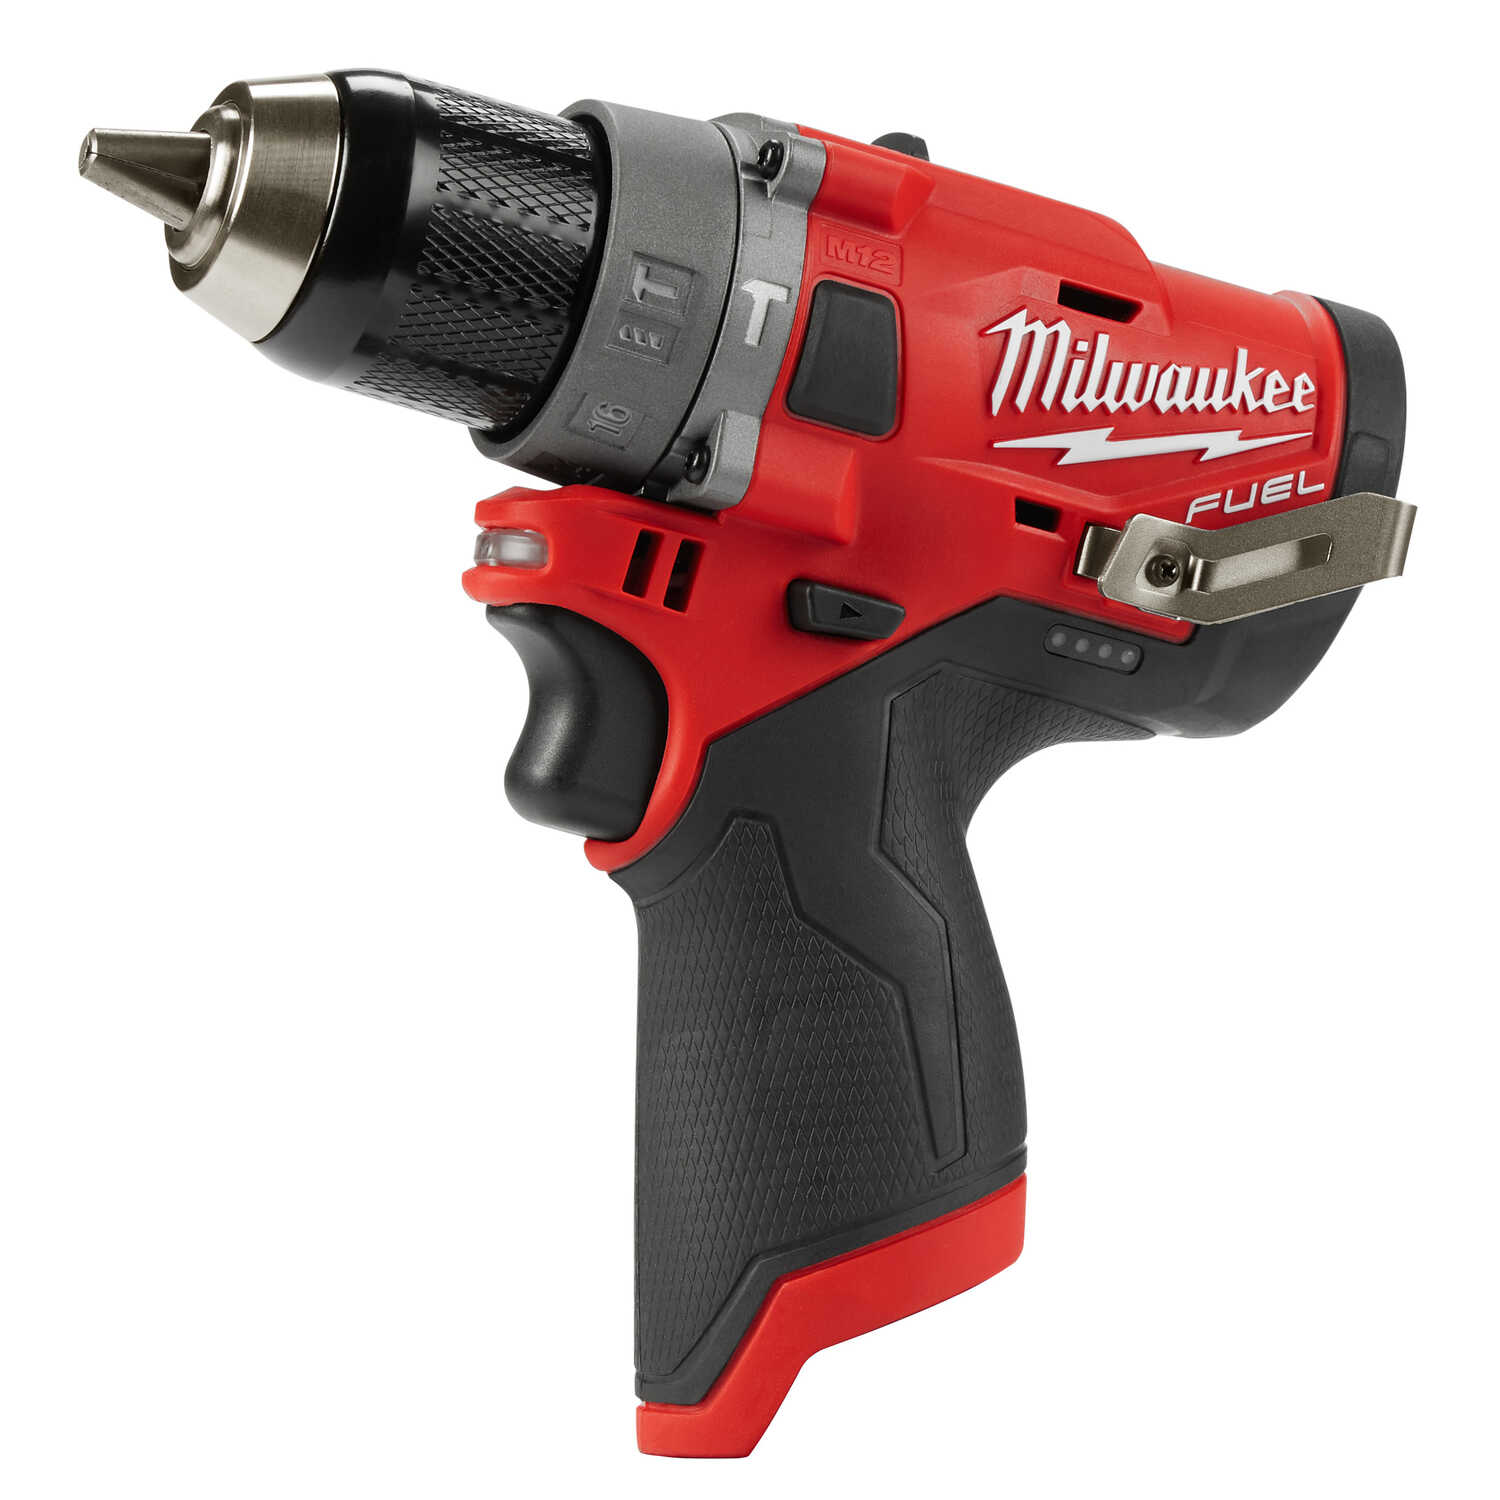 Milwaukee  M12 FUEL  12 volt Brushless  Cordless Hammer Drill/Driver  Bare Tool  1/2 in. 1700 rpm